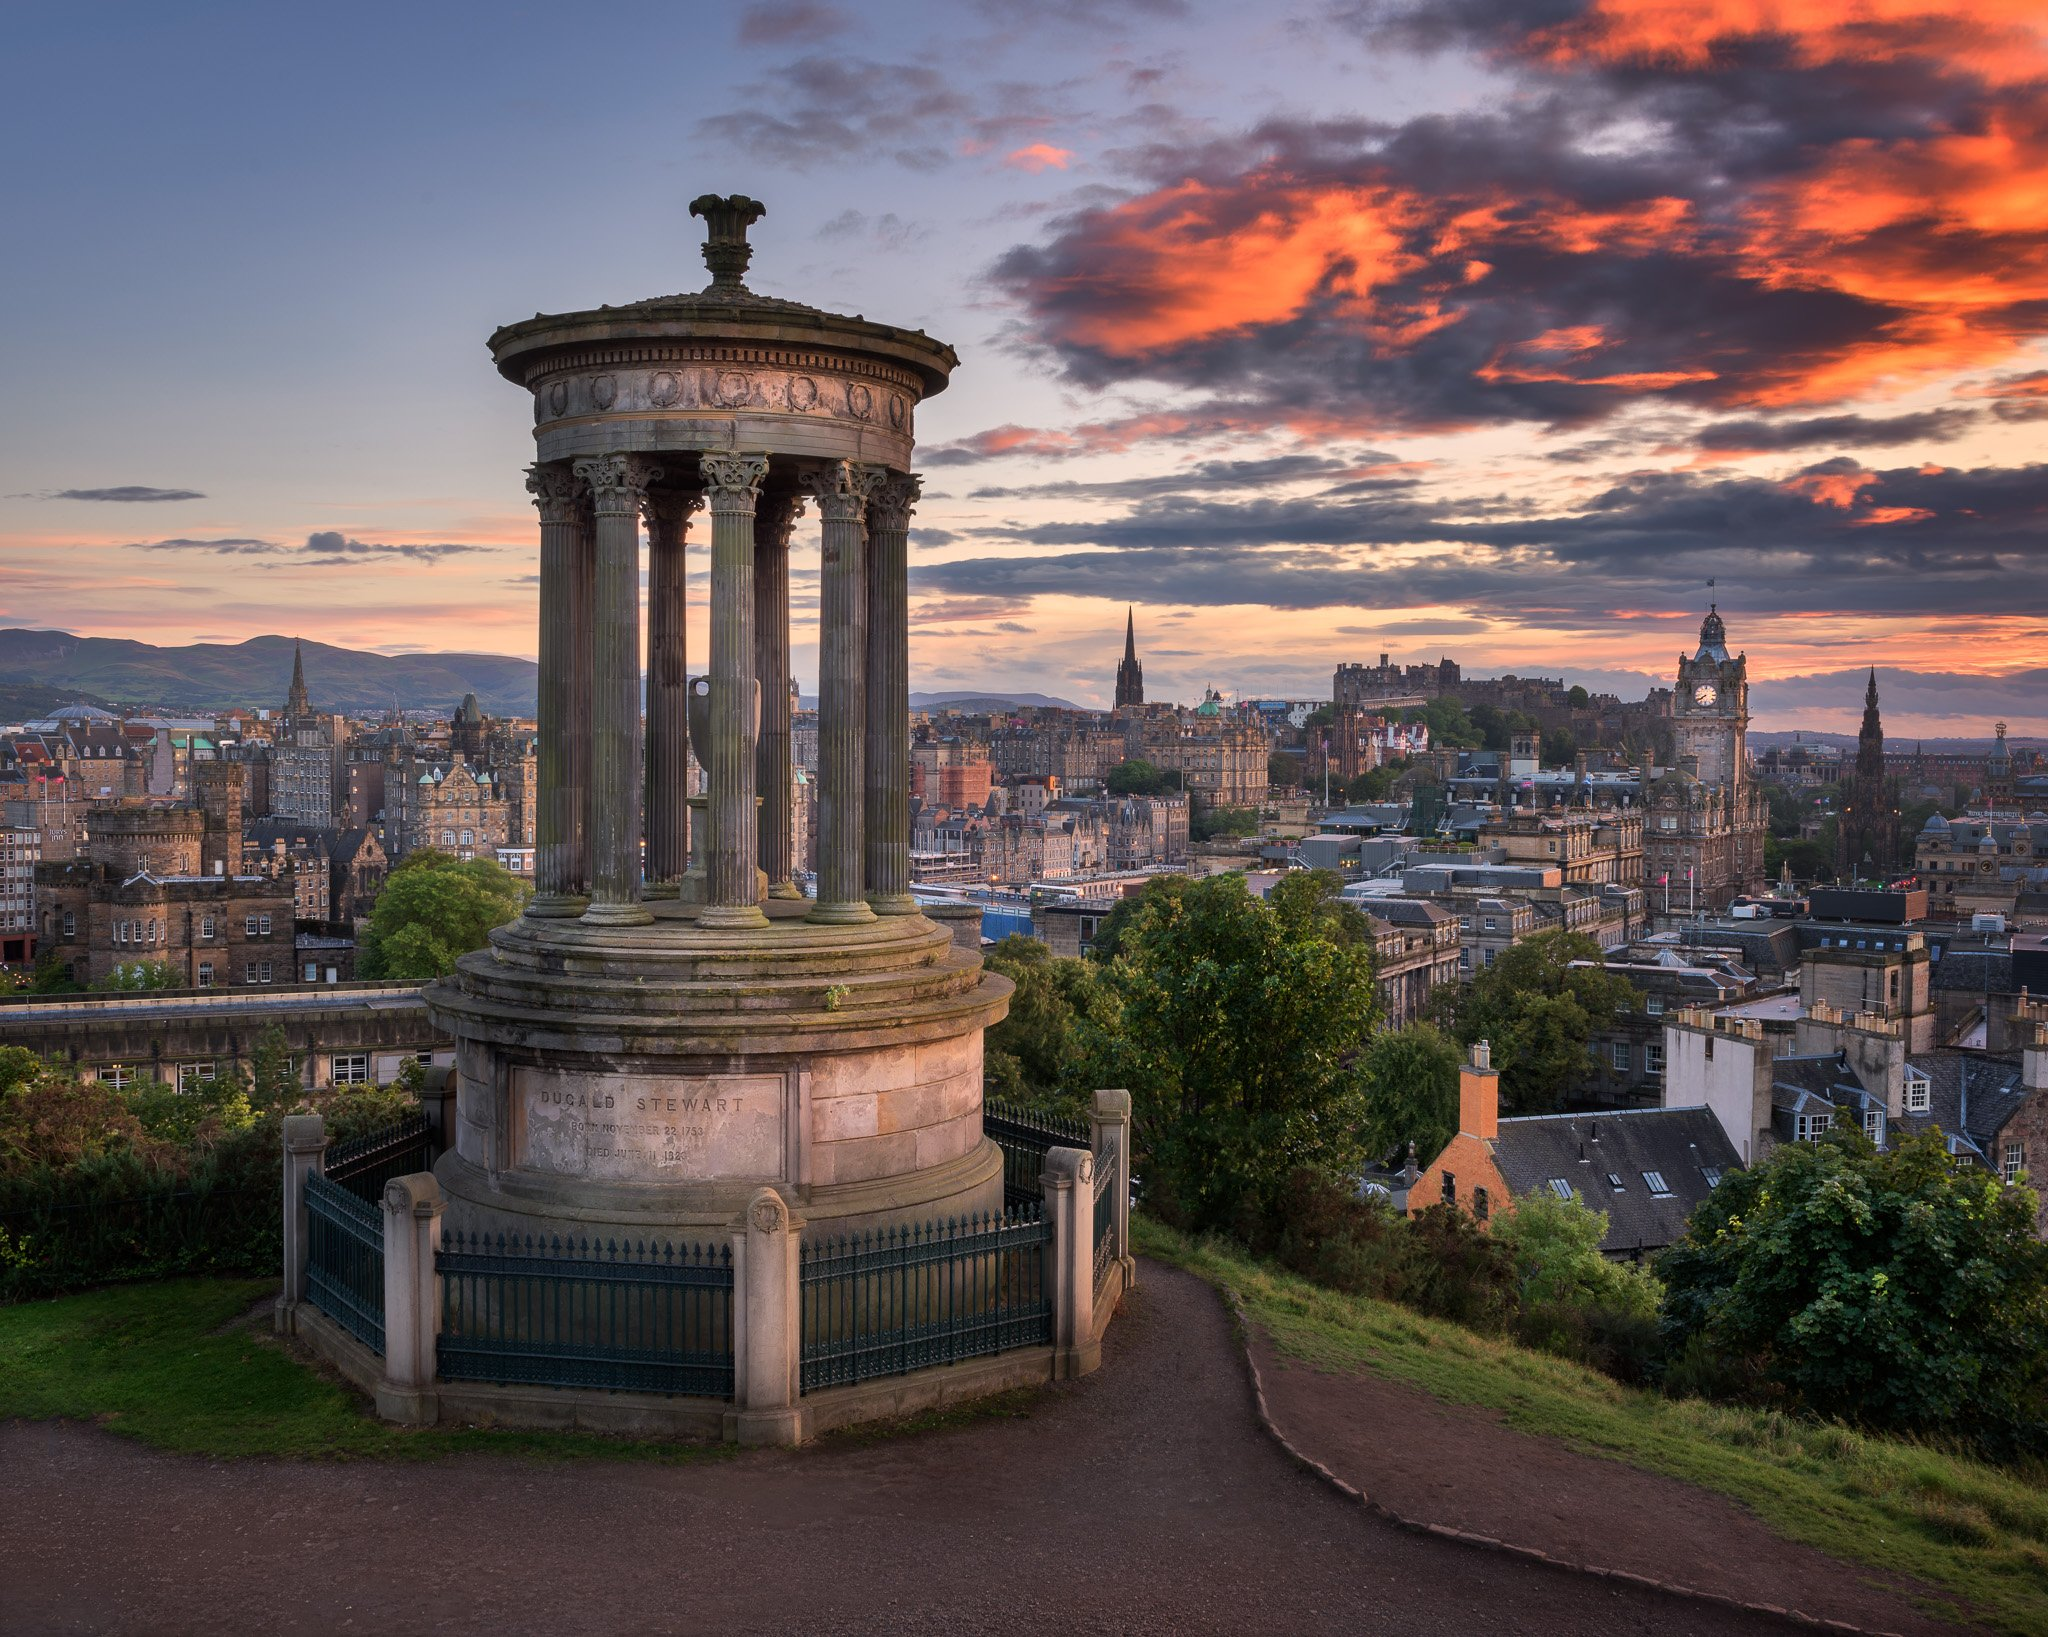 ancient, architecture, attraction, beautiful, britain, building, calton, capital, castle, city, cityscape, clock, corinthian, culture, dugald, dusk, edinburgh, europe, european, evening, famous, heritage, hill, historic, historical, history, iconic, kingd, anshar